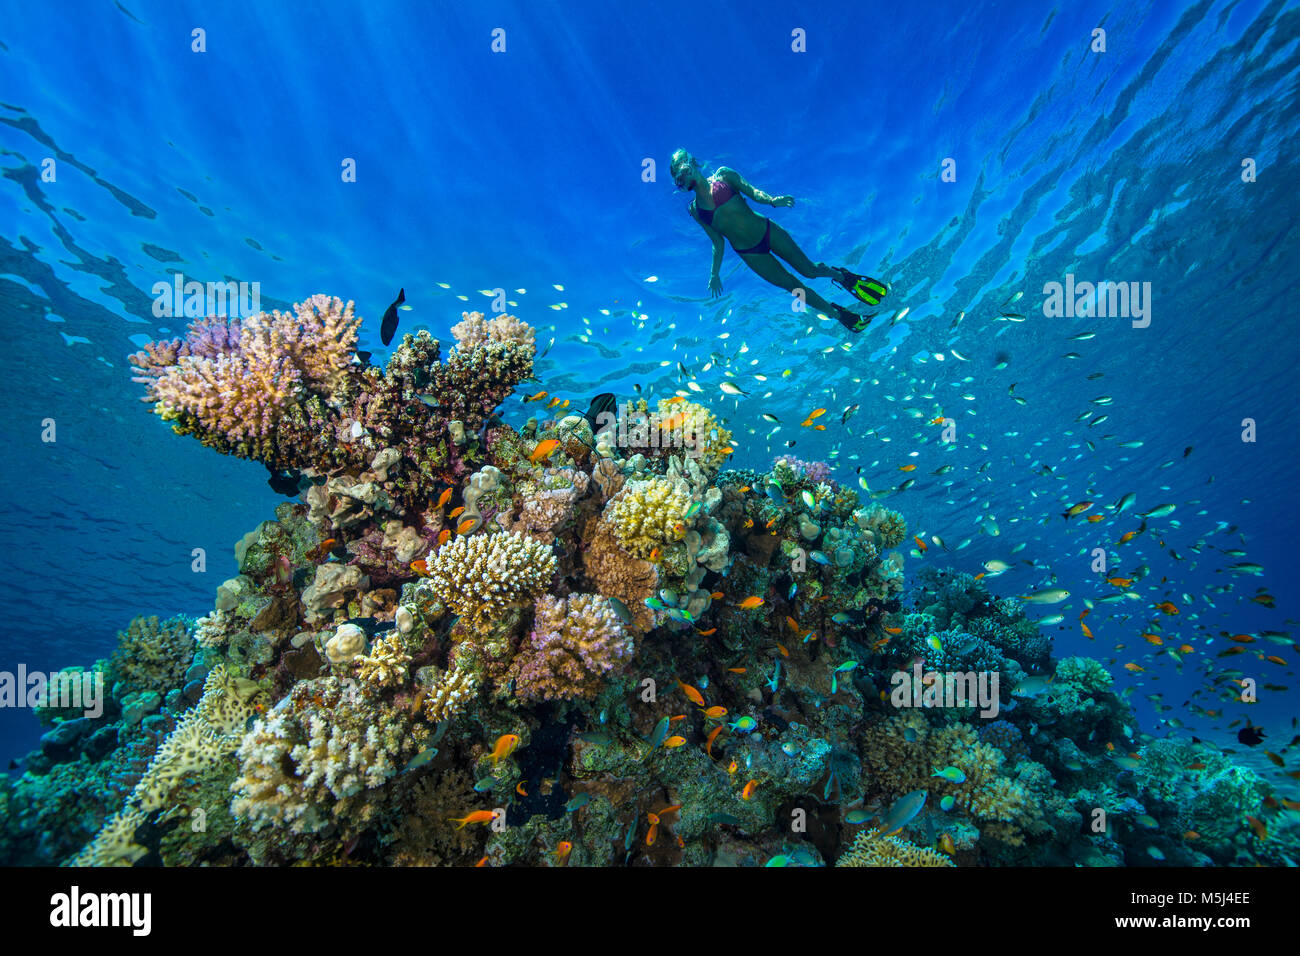 L'Egypte, Mer Rouge, Hurghada, young woman snorkeling à coral reef Photo Stock